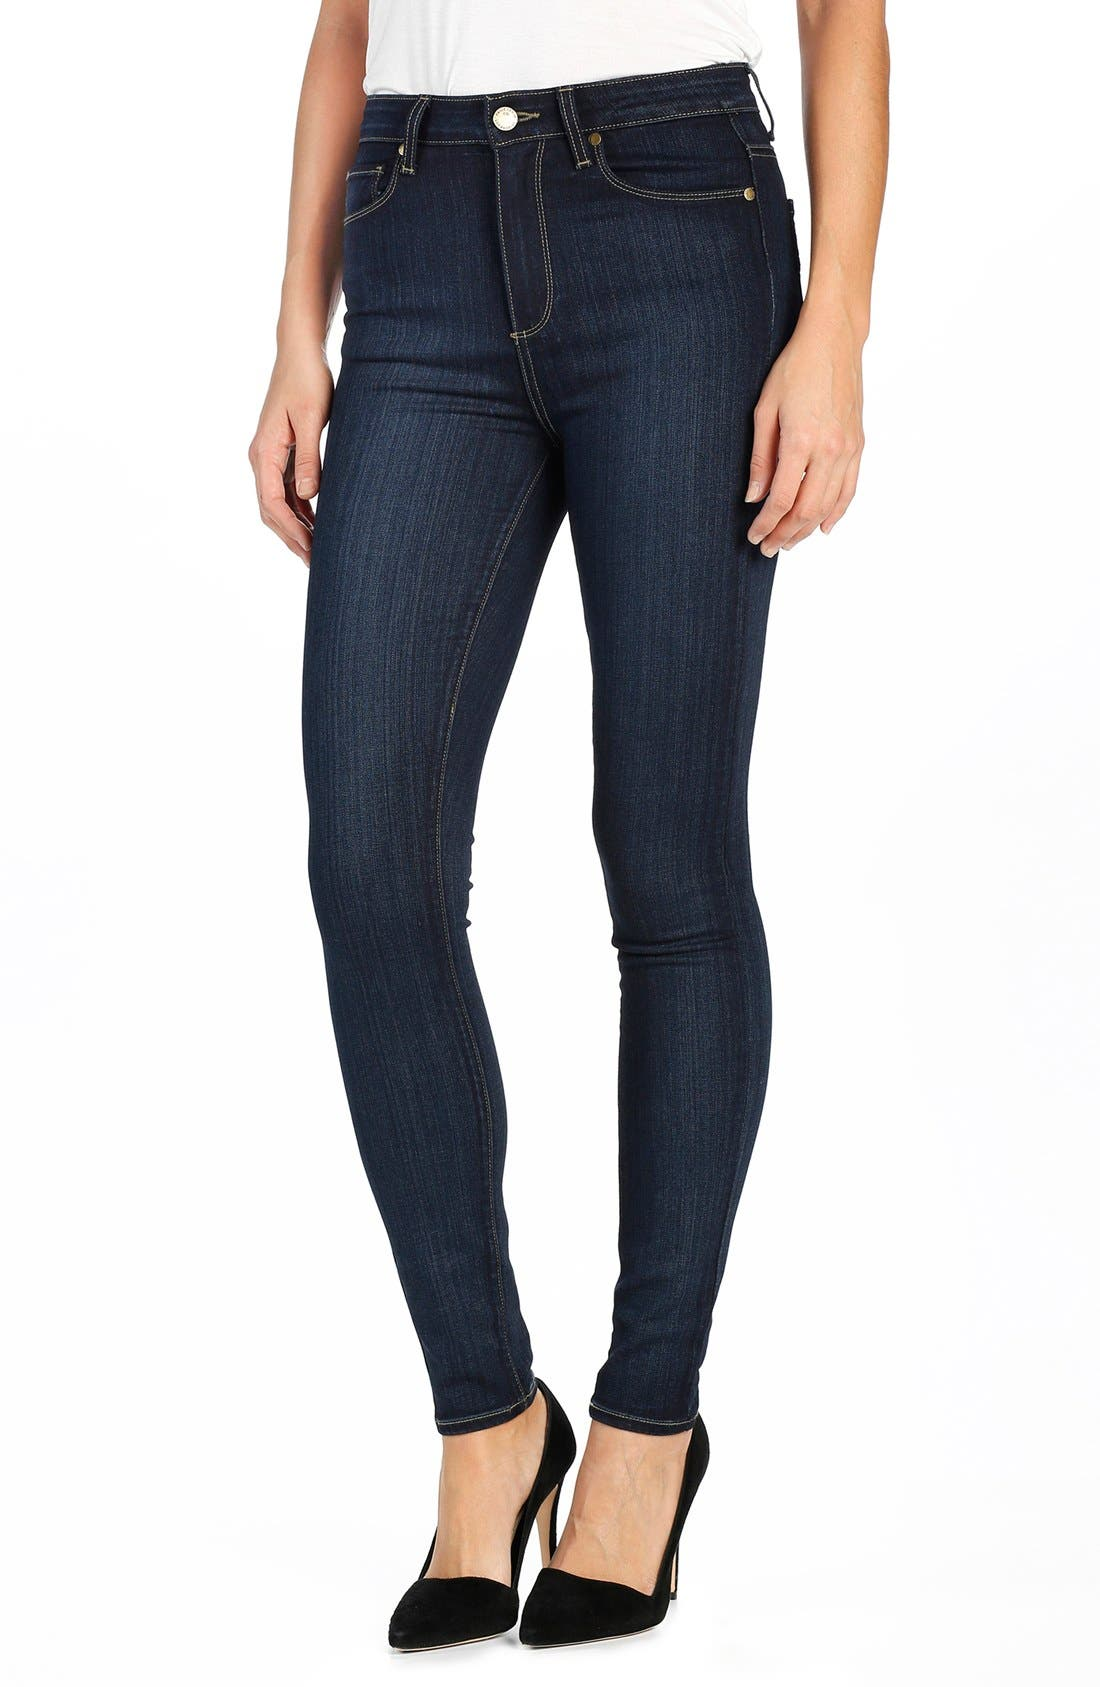 Transcend - Margot High Waist Ultra Skinny Jeans,                         Main,                         color, La Rue No Whiskers